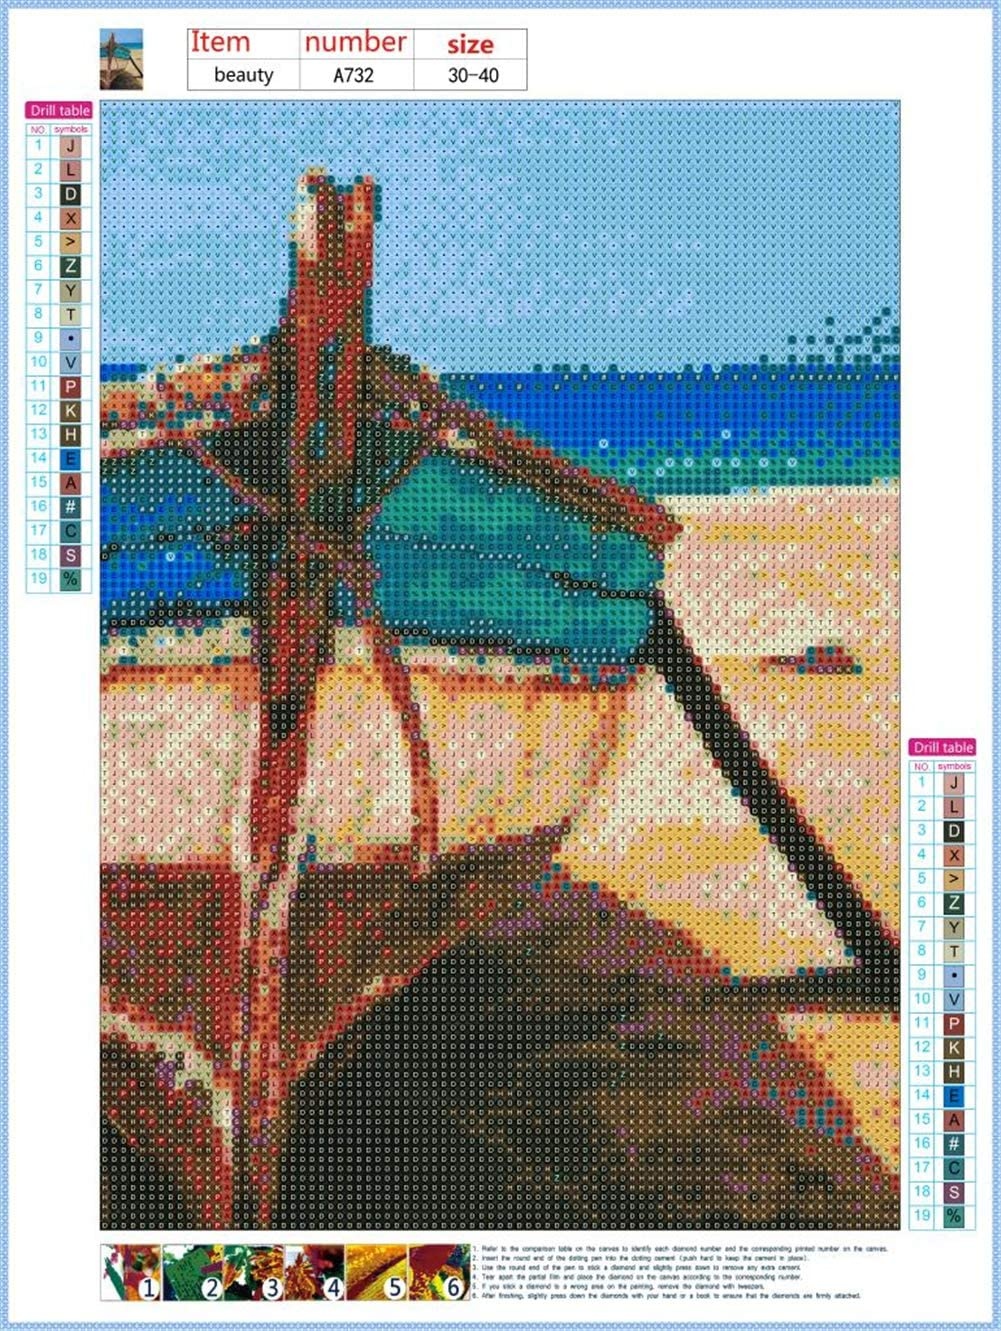 DIY 5D Diamond Painting Kits By Number Full Drill Seaside Boat, 30X40cm Home 40X30CM Diamond art Embroidery Cross Stitch Pictures Arts Craft Home Wall Decor Gift